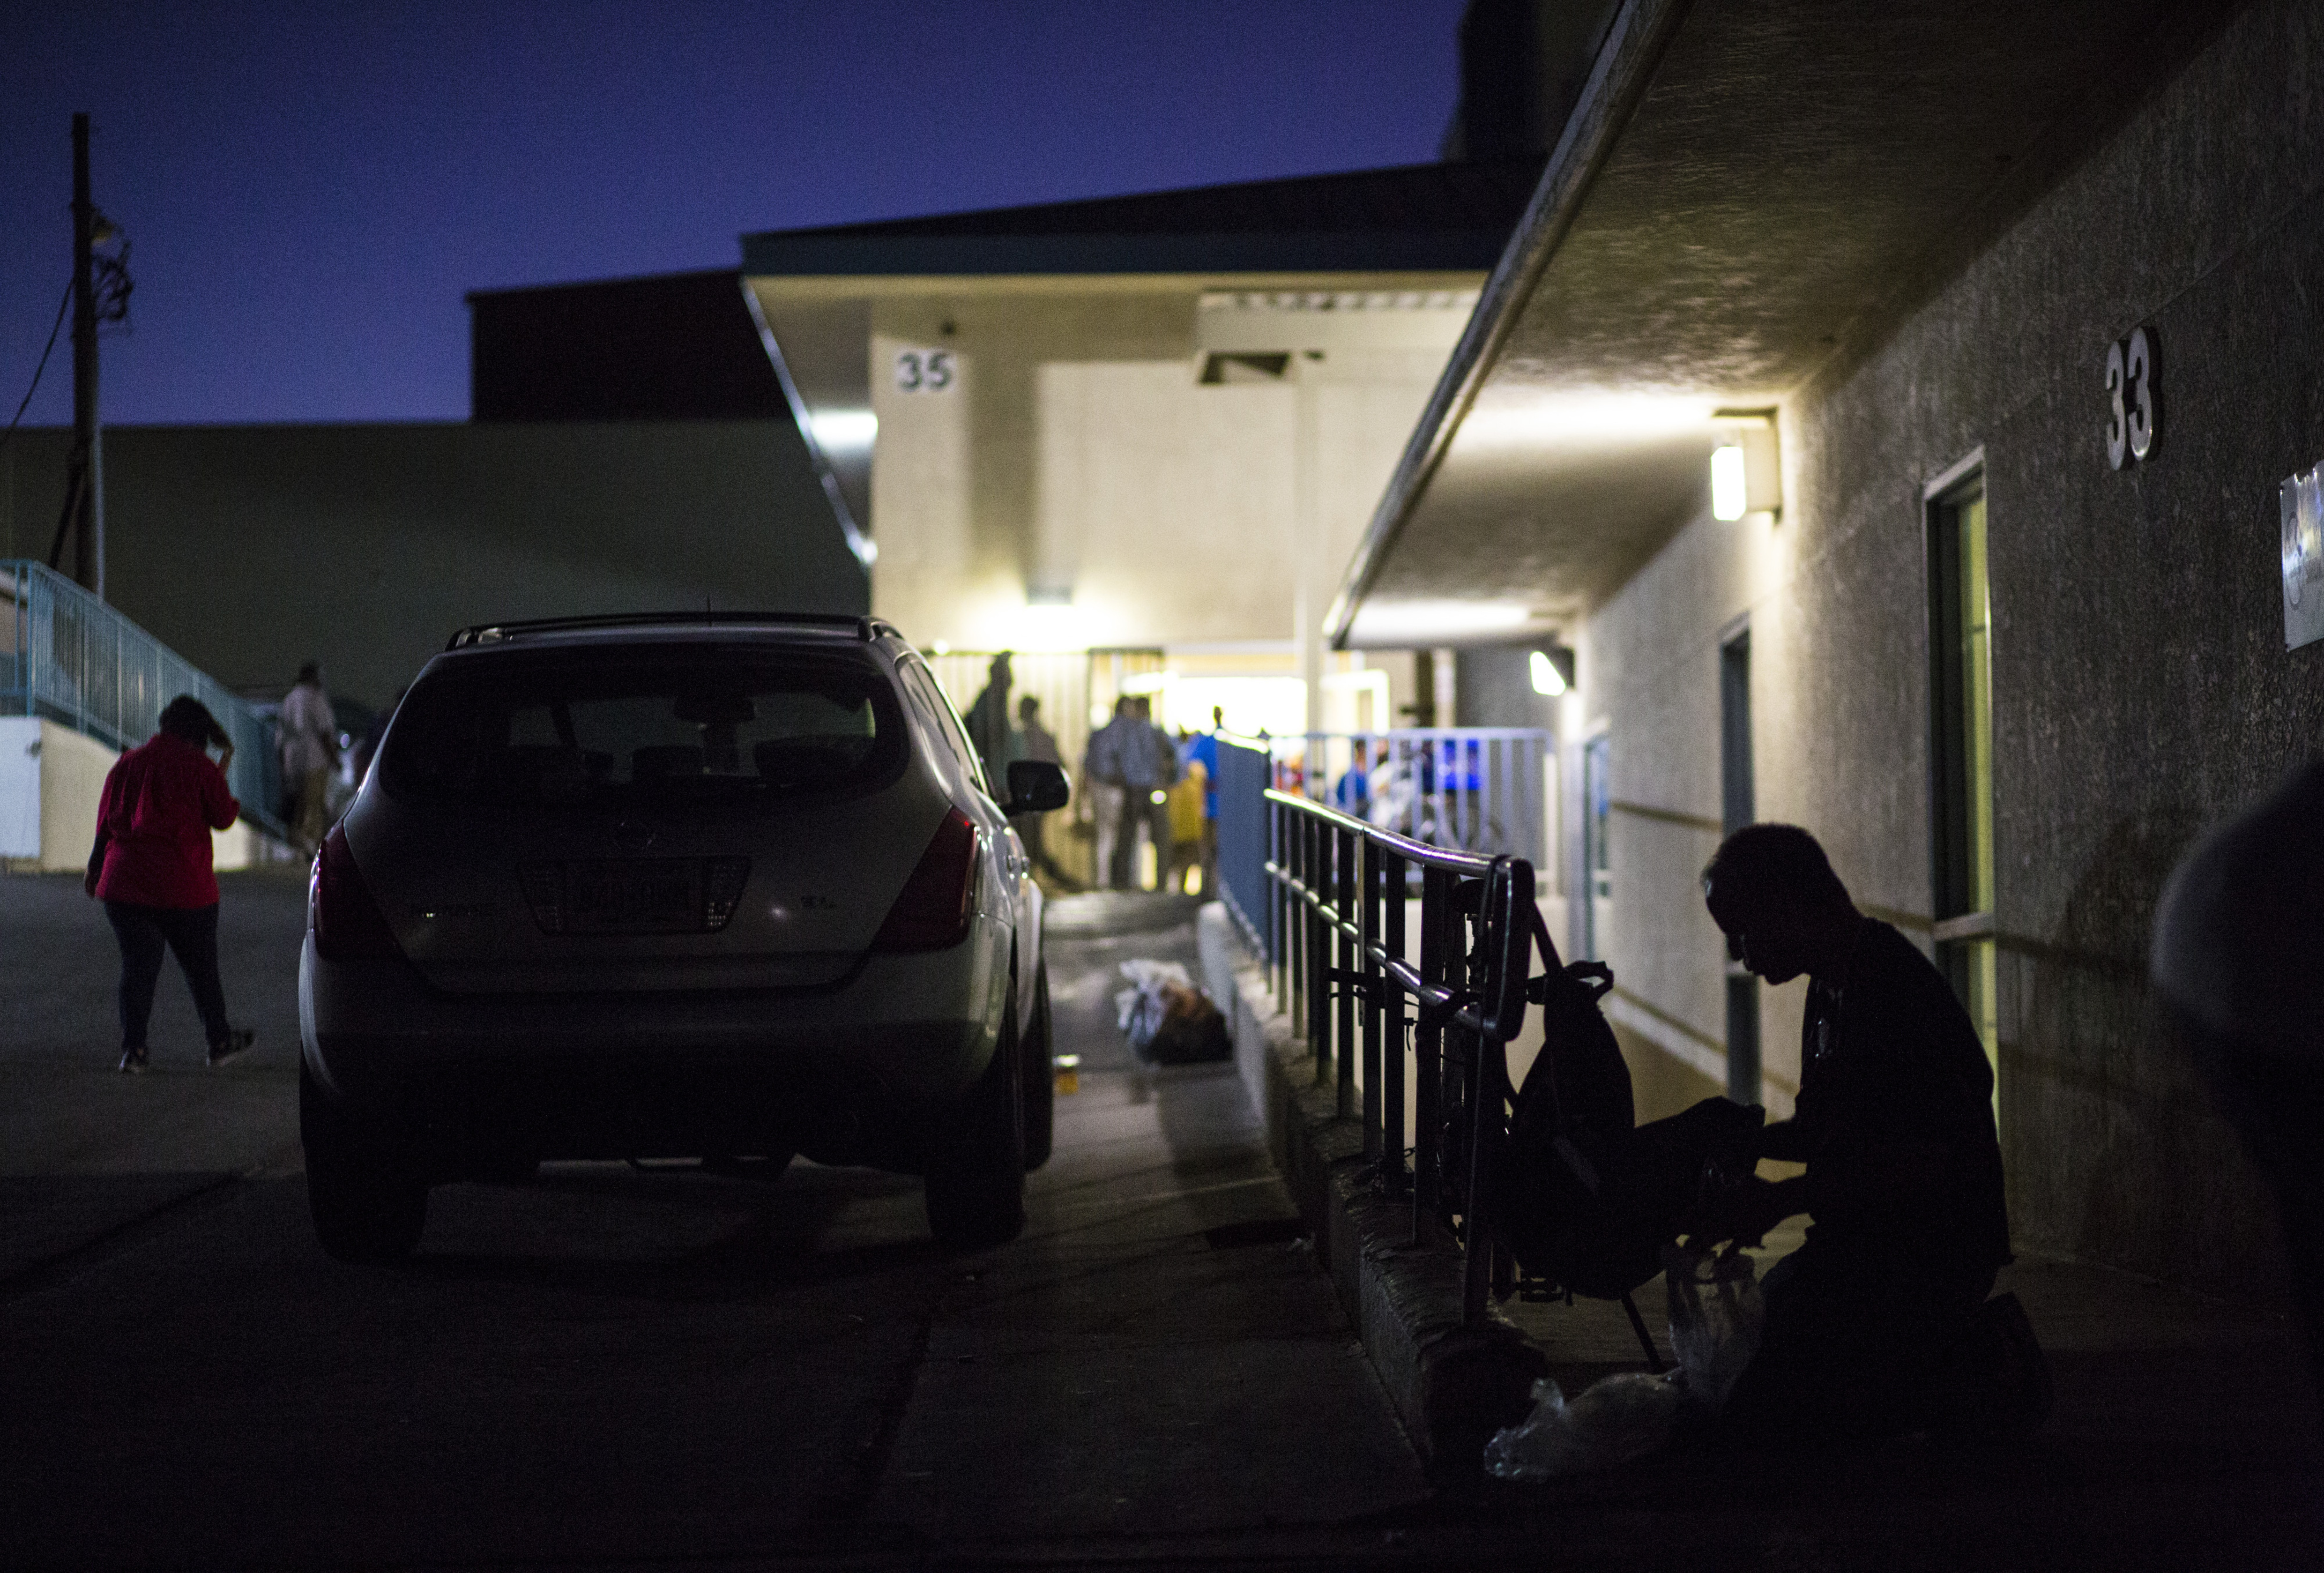 This Oct. 15, 2019, file photo shows a patron of The Salvation Army homeless shelter, right, checking his belongings at a shelter near downtown Las Vegas.